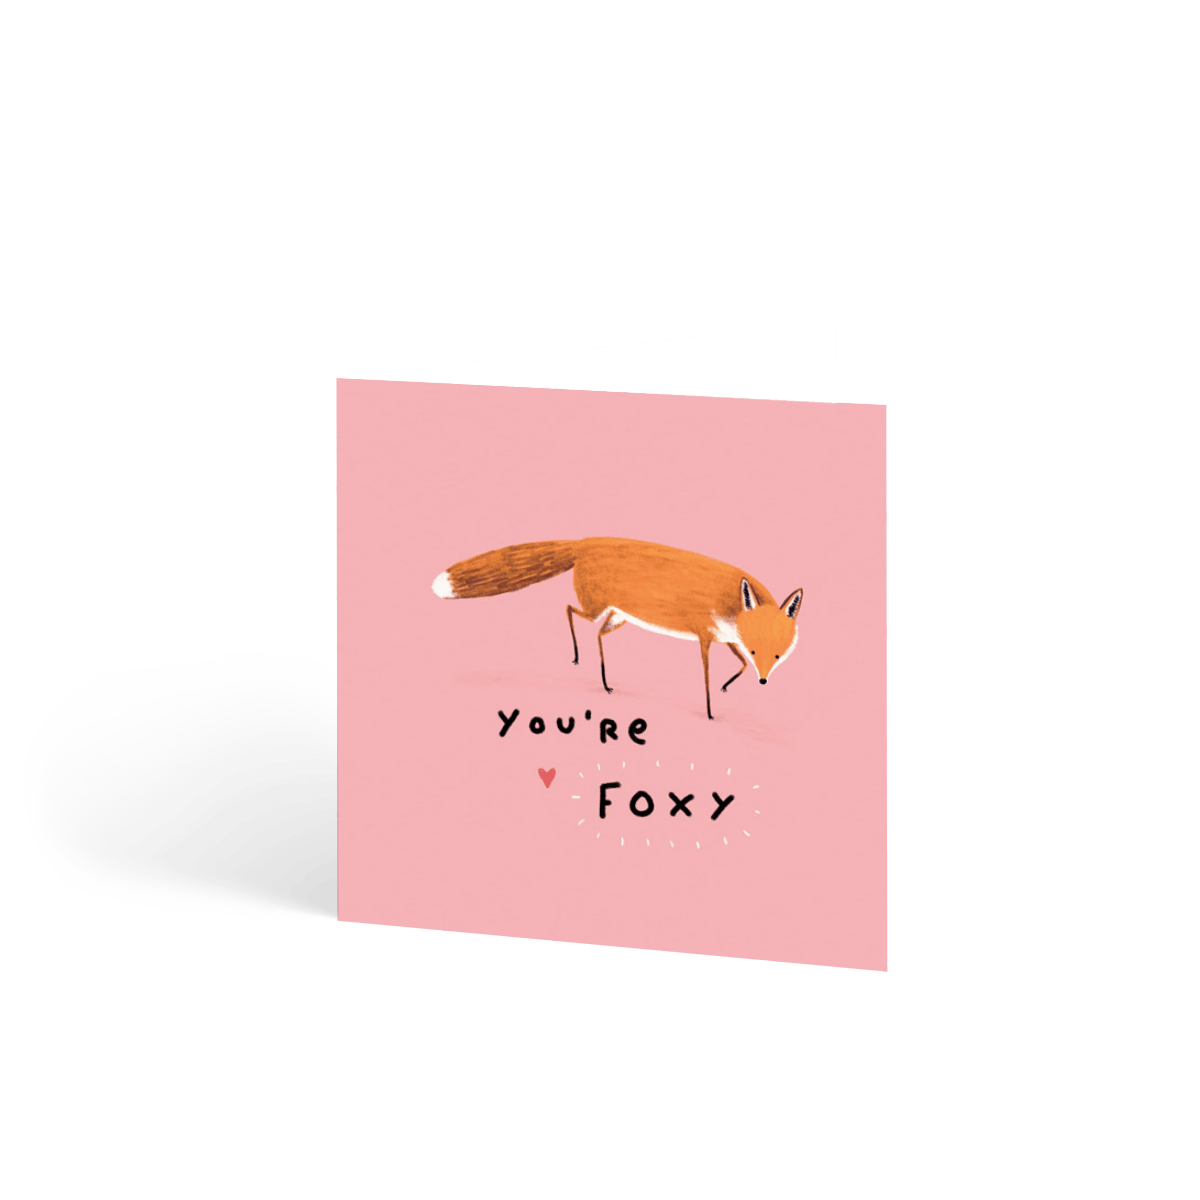 Https%3a%2f%2fwww.papier.com%2fproduct image%2f37073%2f16%2fyou re foxy 9327 front 1525363464.png?ixlib=rb 1.1